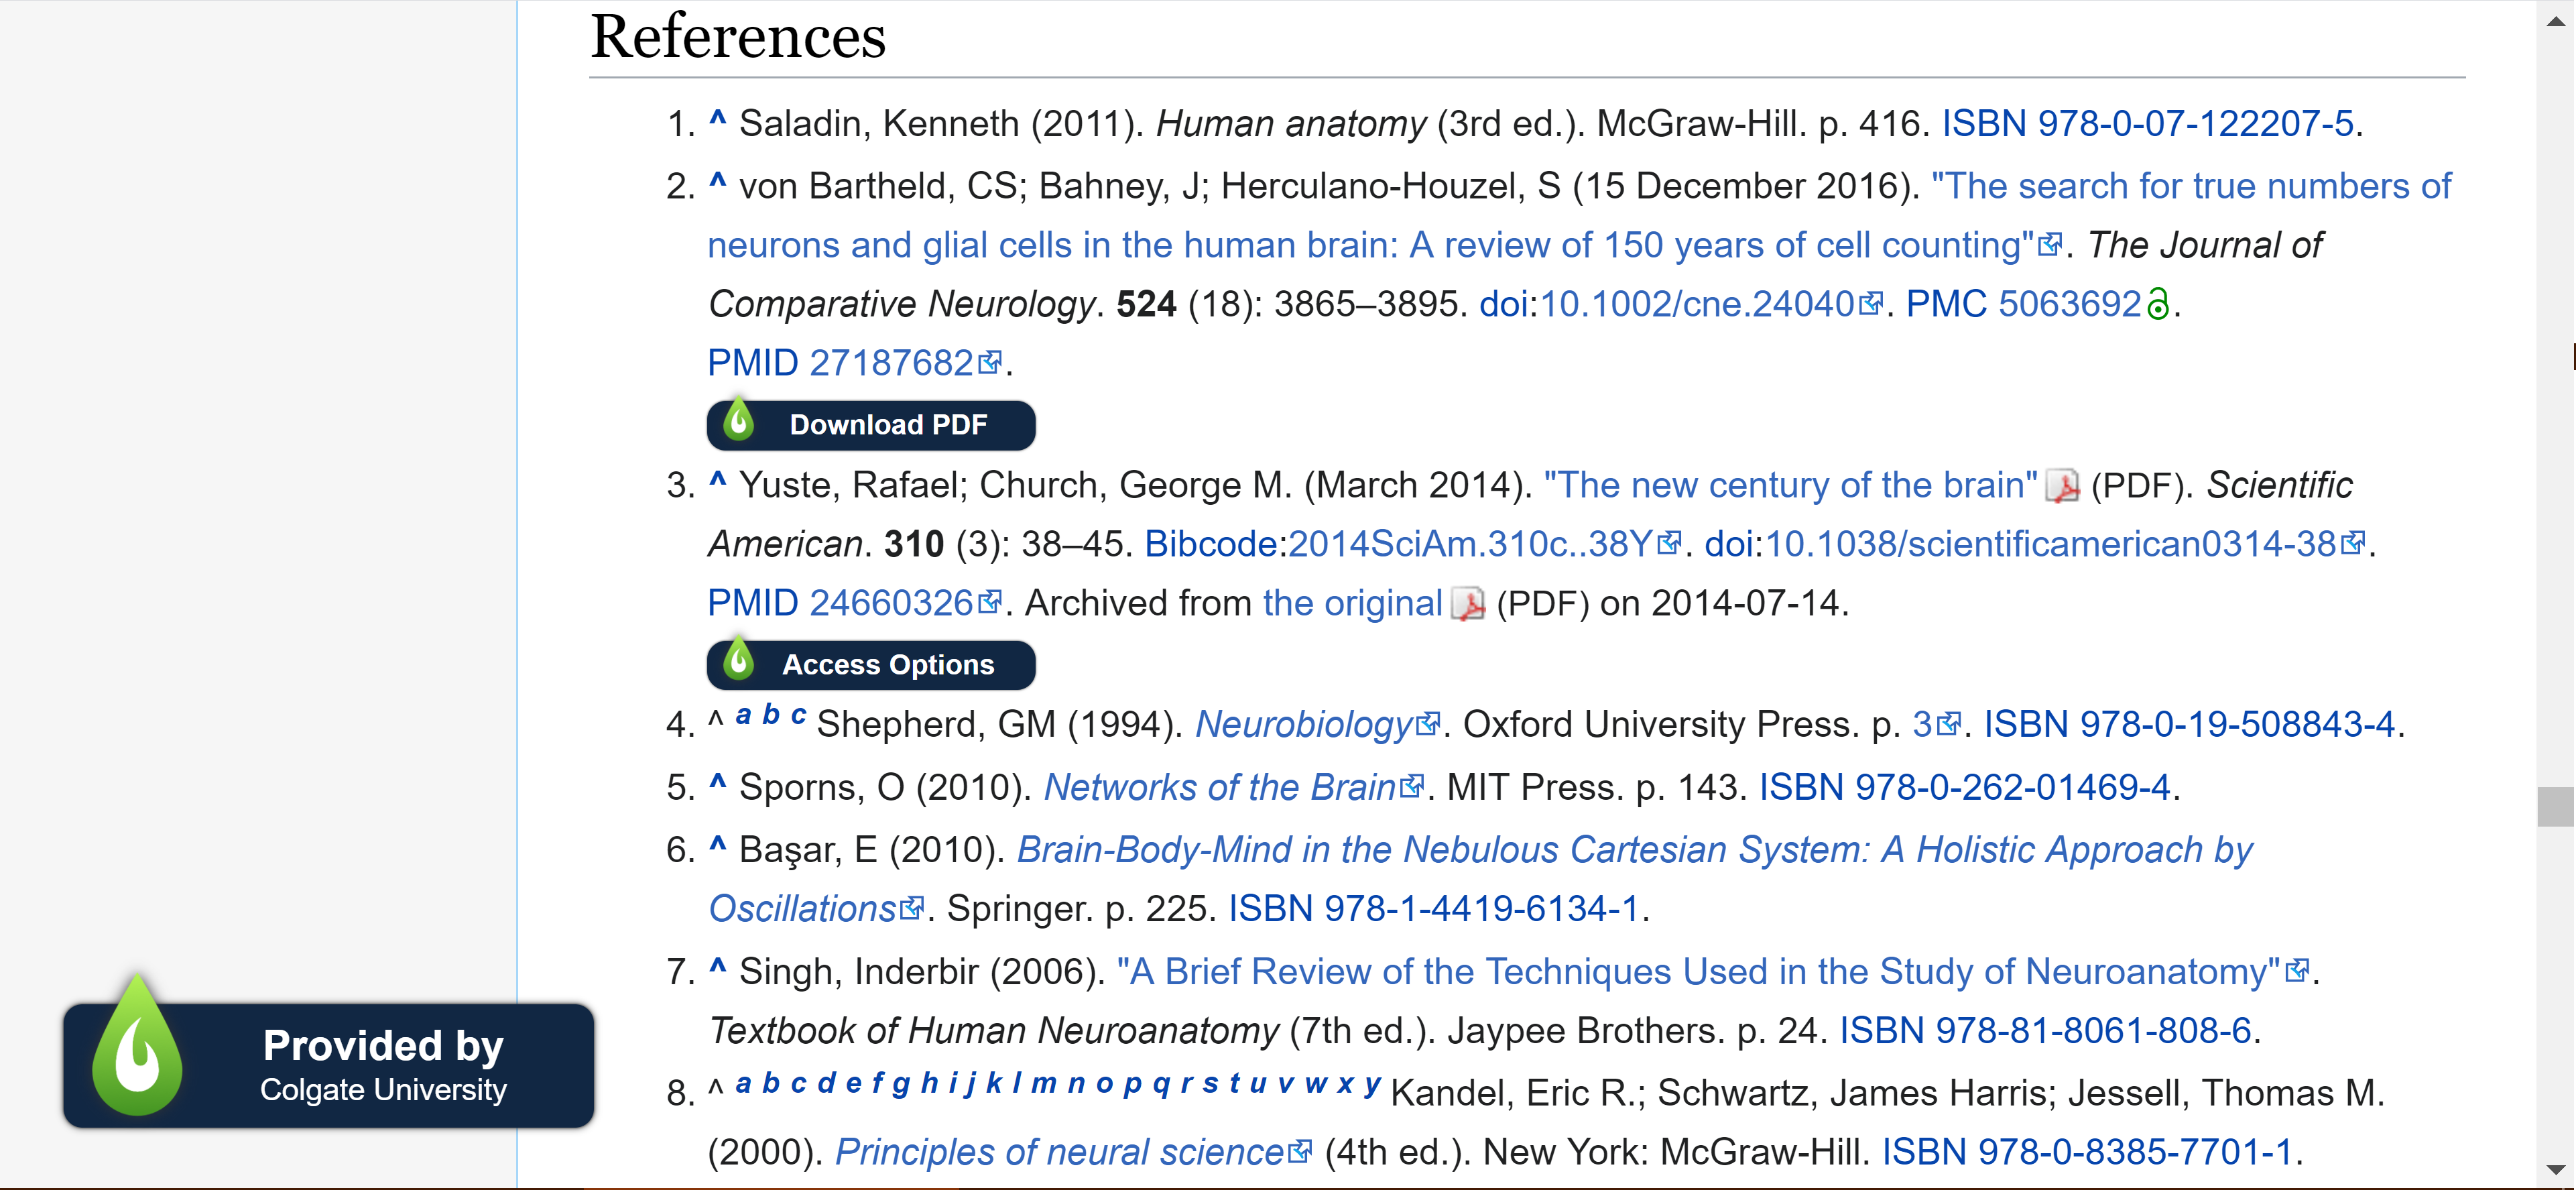 """Wikipedia references with """"Download PDF"""" buttons next to the ones available through Colgate University Libraries"""